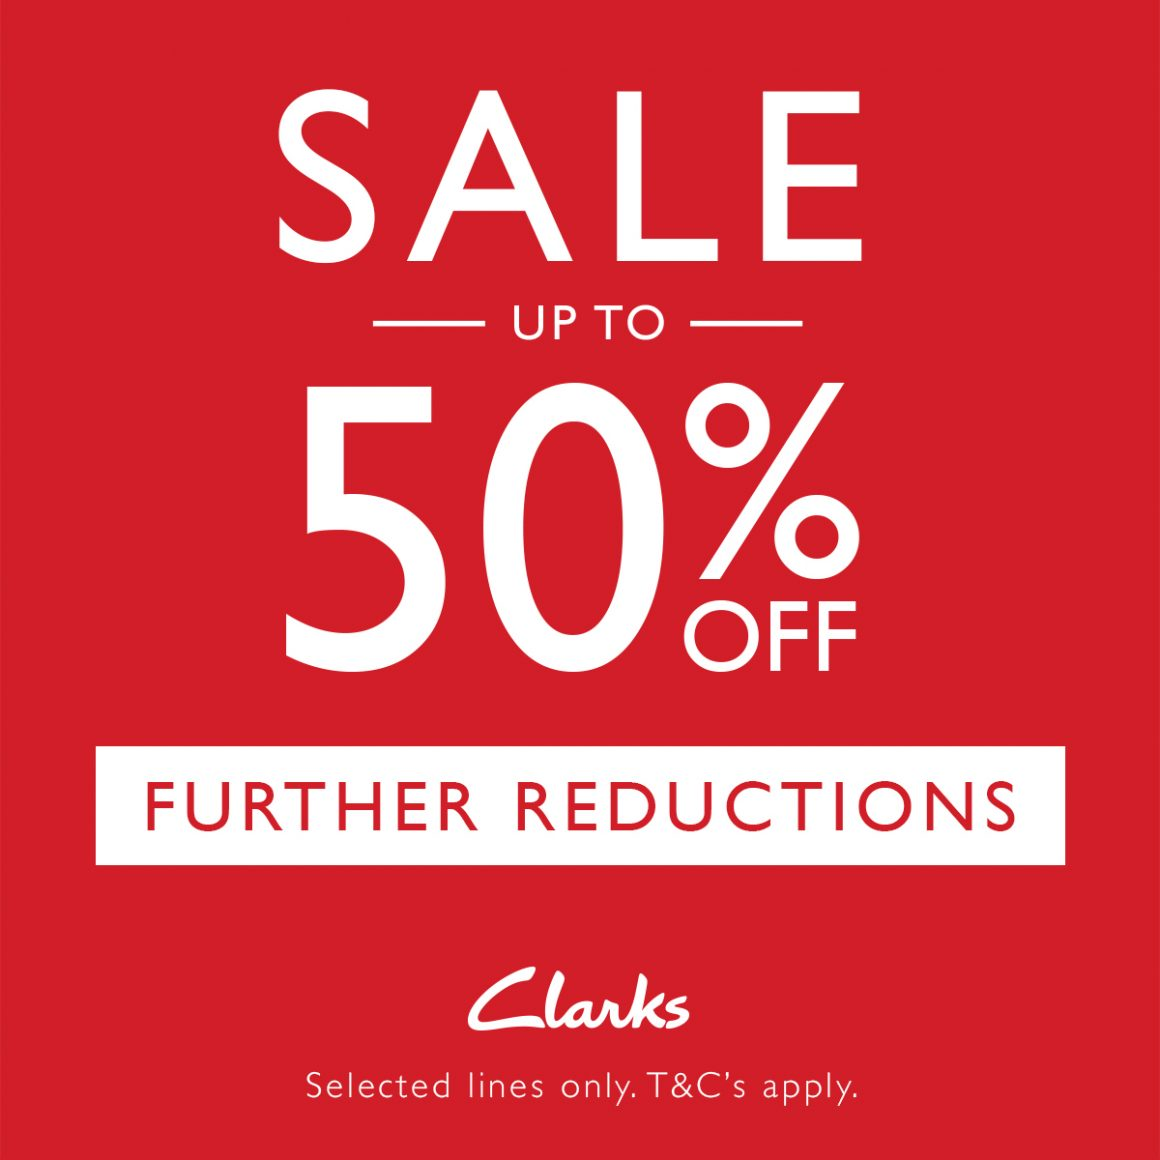 UP TO 50% OFF SALE ITEMS AT CLARKS